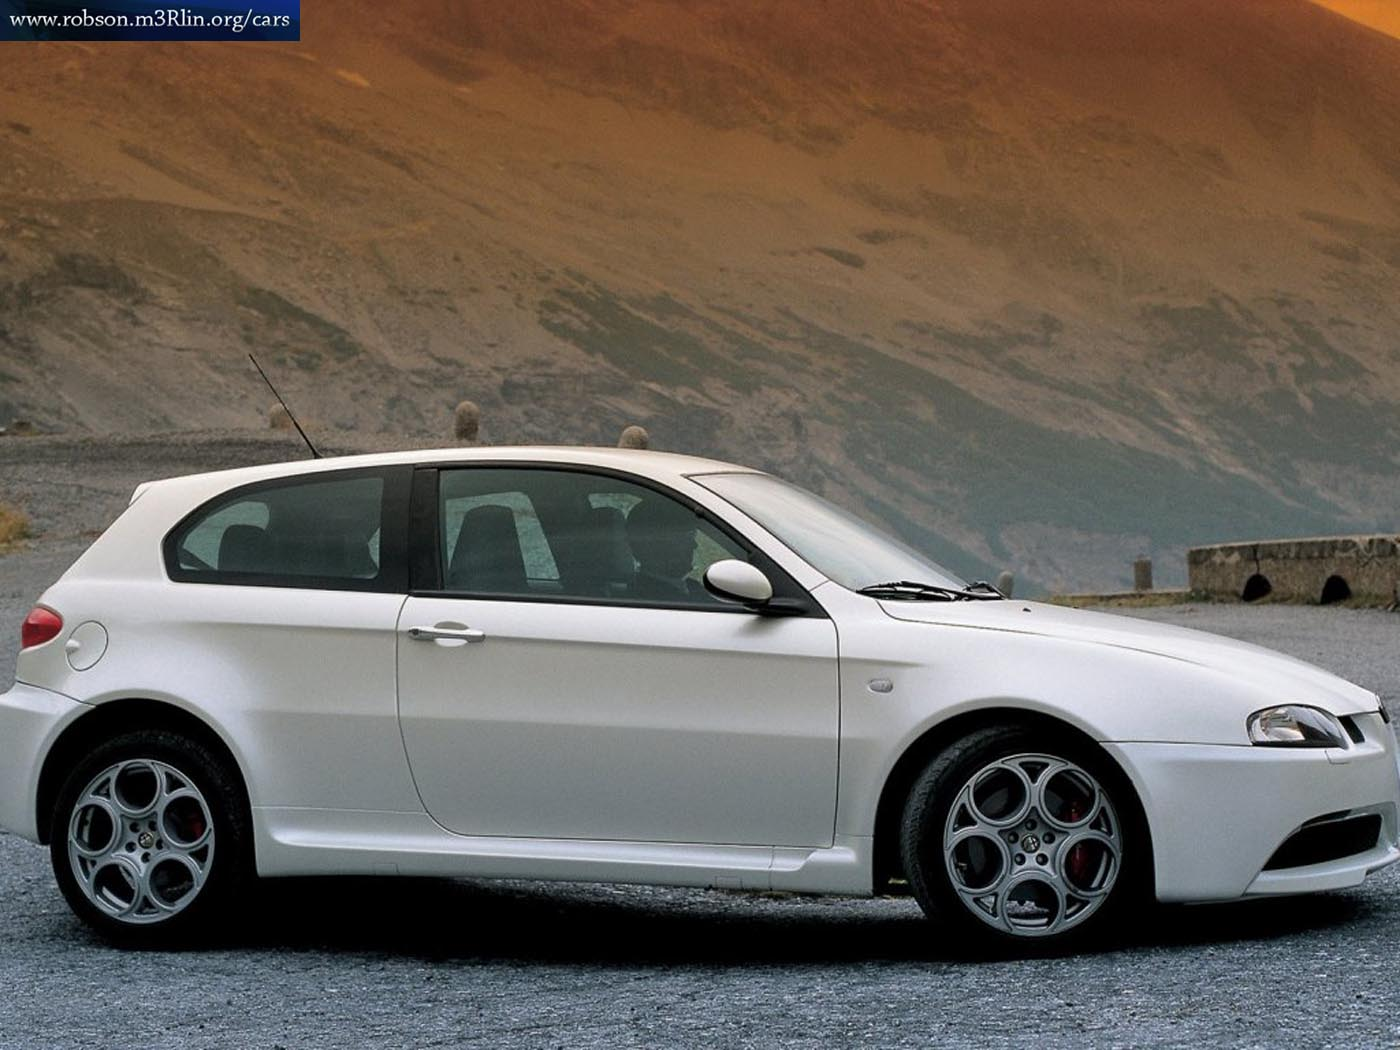 alfa romeo 147 white - photo #7